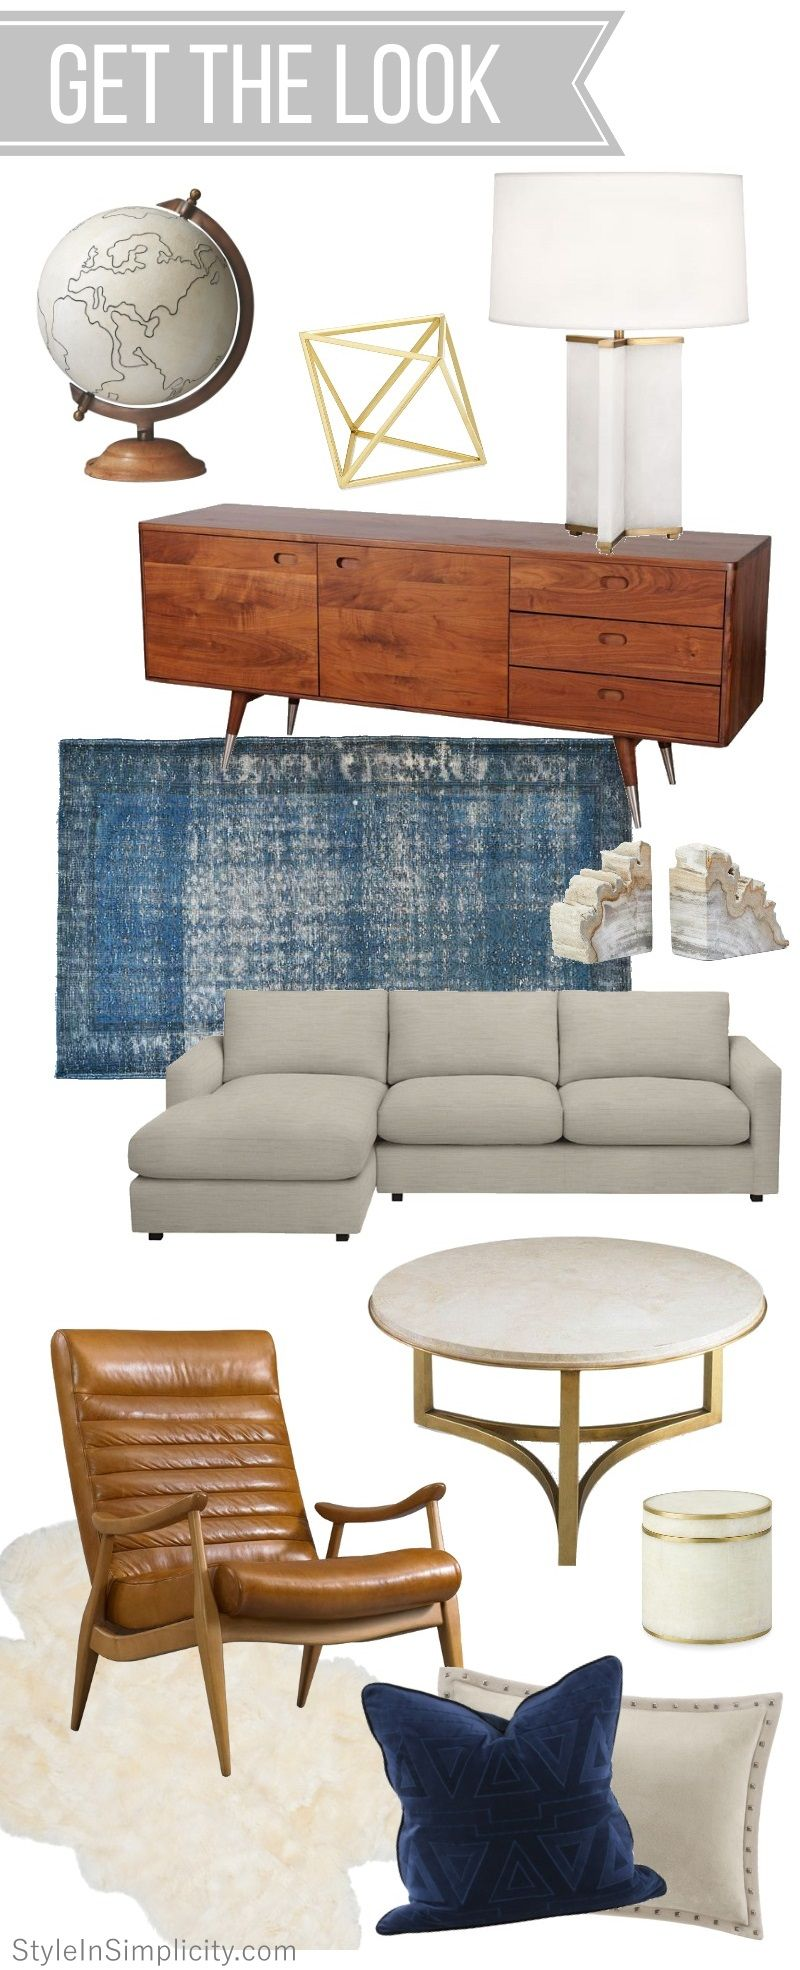 Get The Look // Mid-century Modern Inspired Living Room